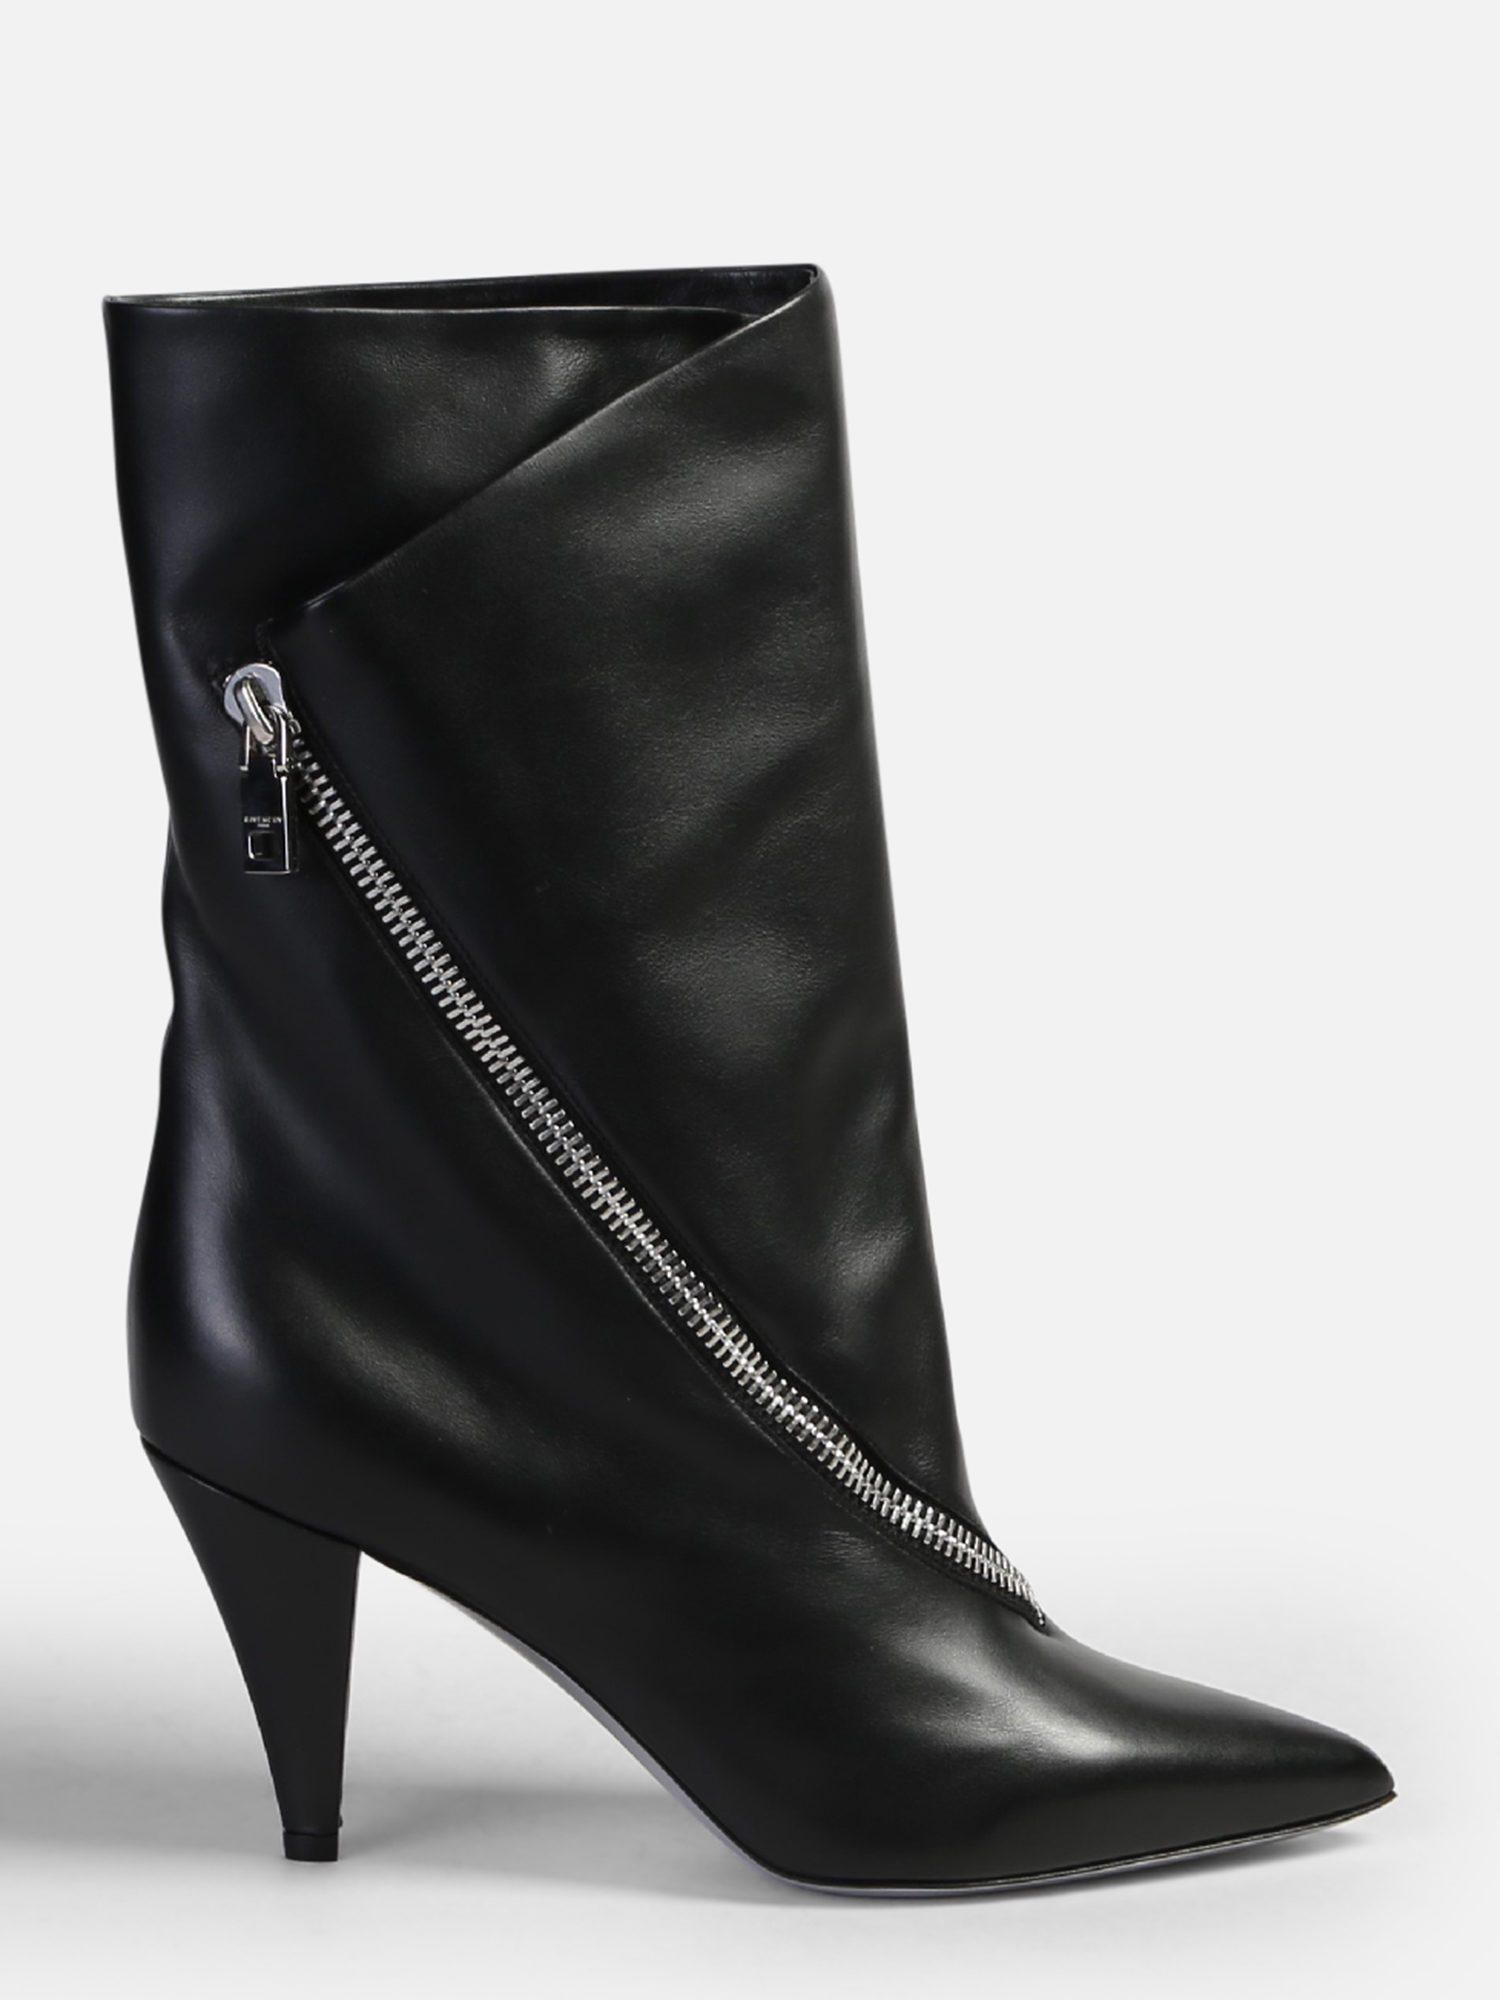 bd8fabbac5f0 Givenchy Zipped Leather Boots in Black - Lyst